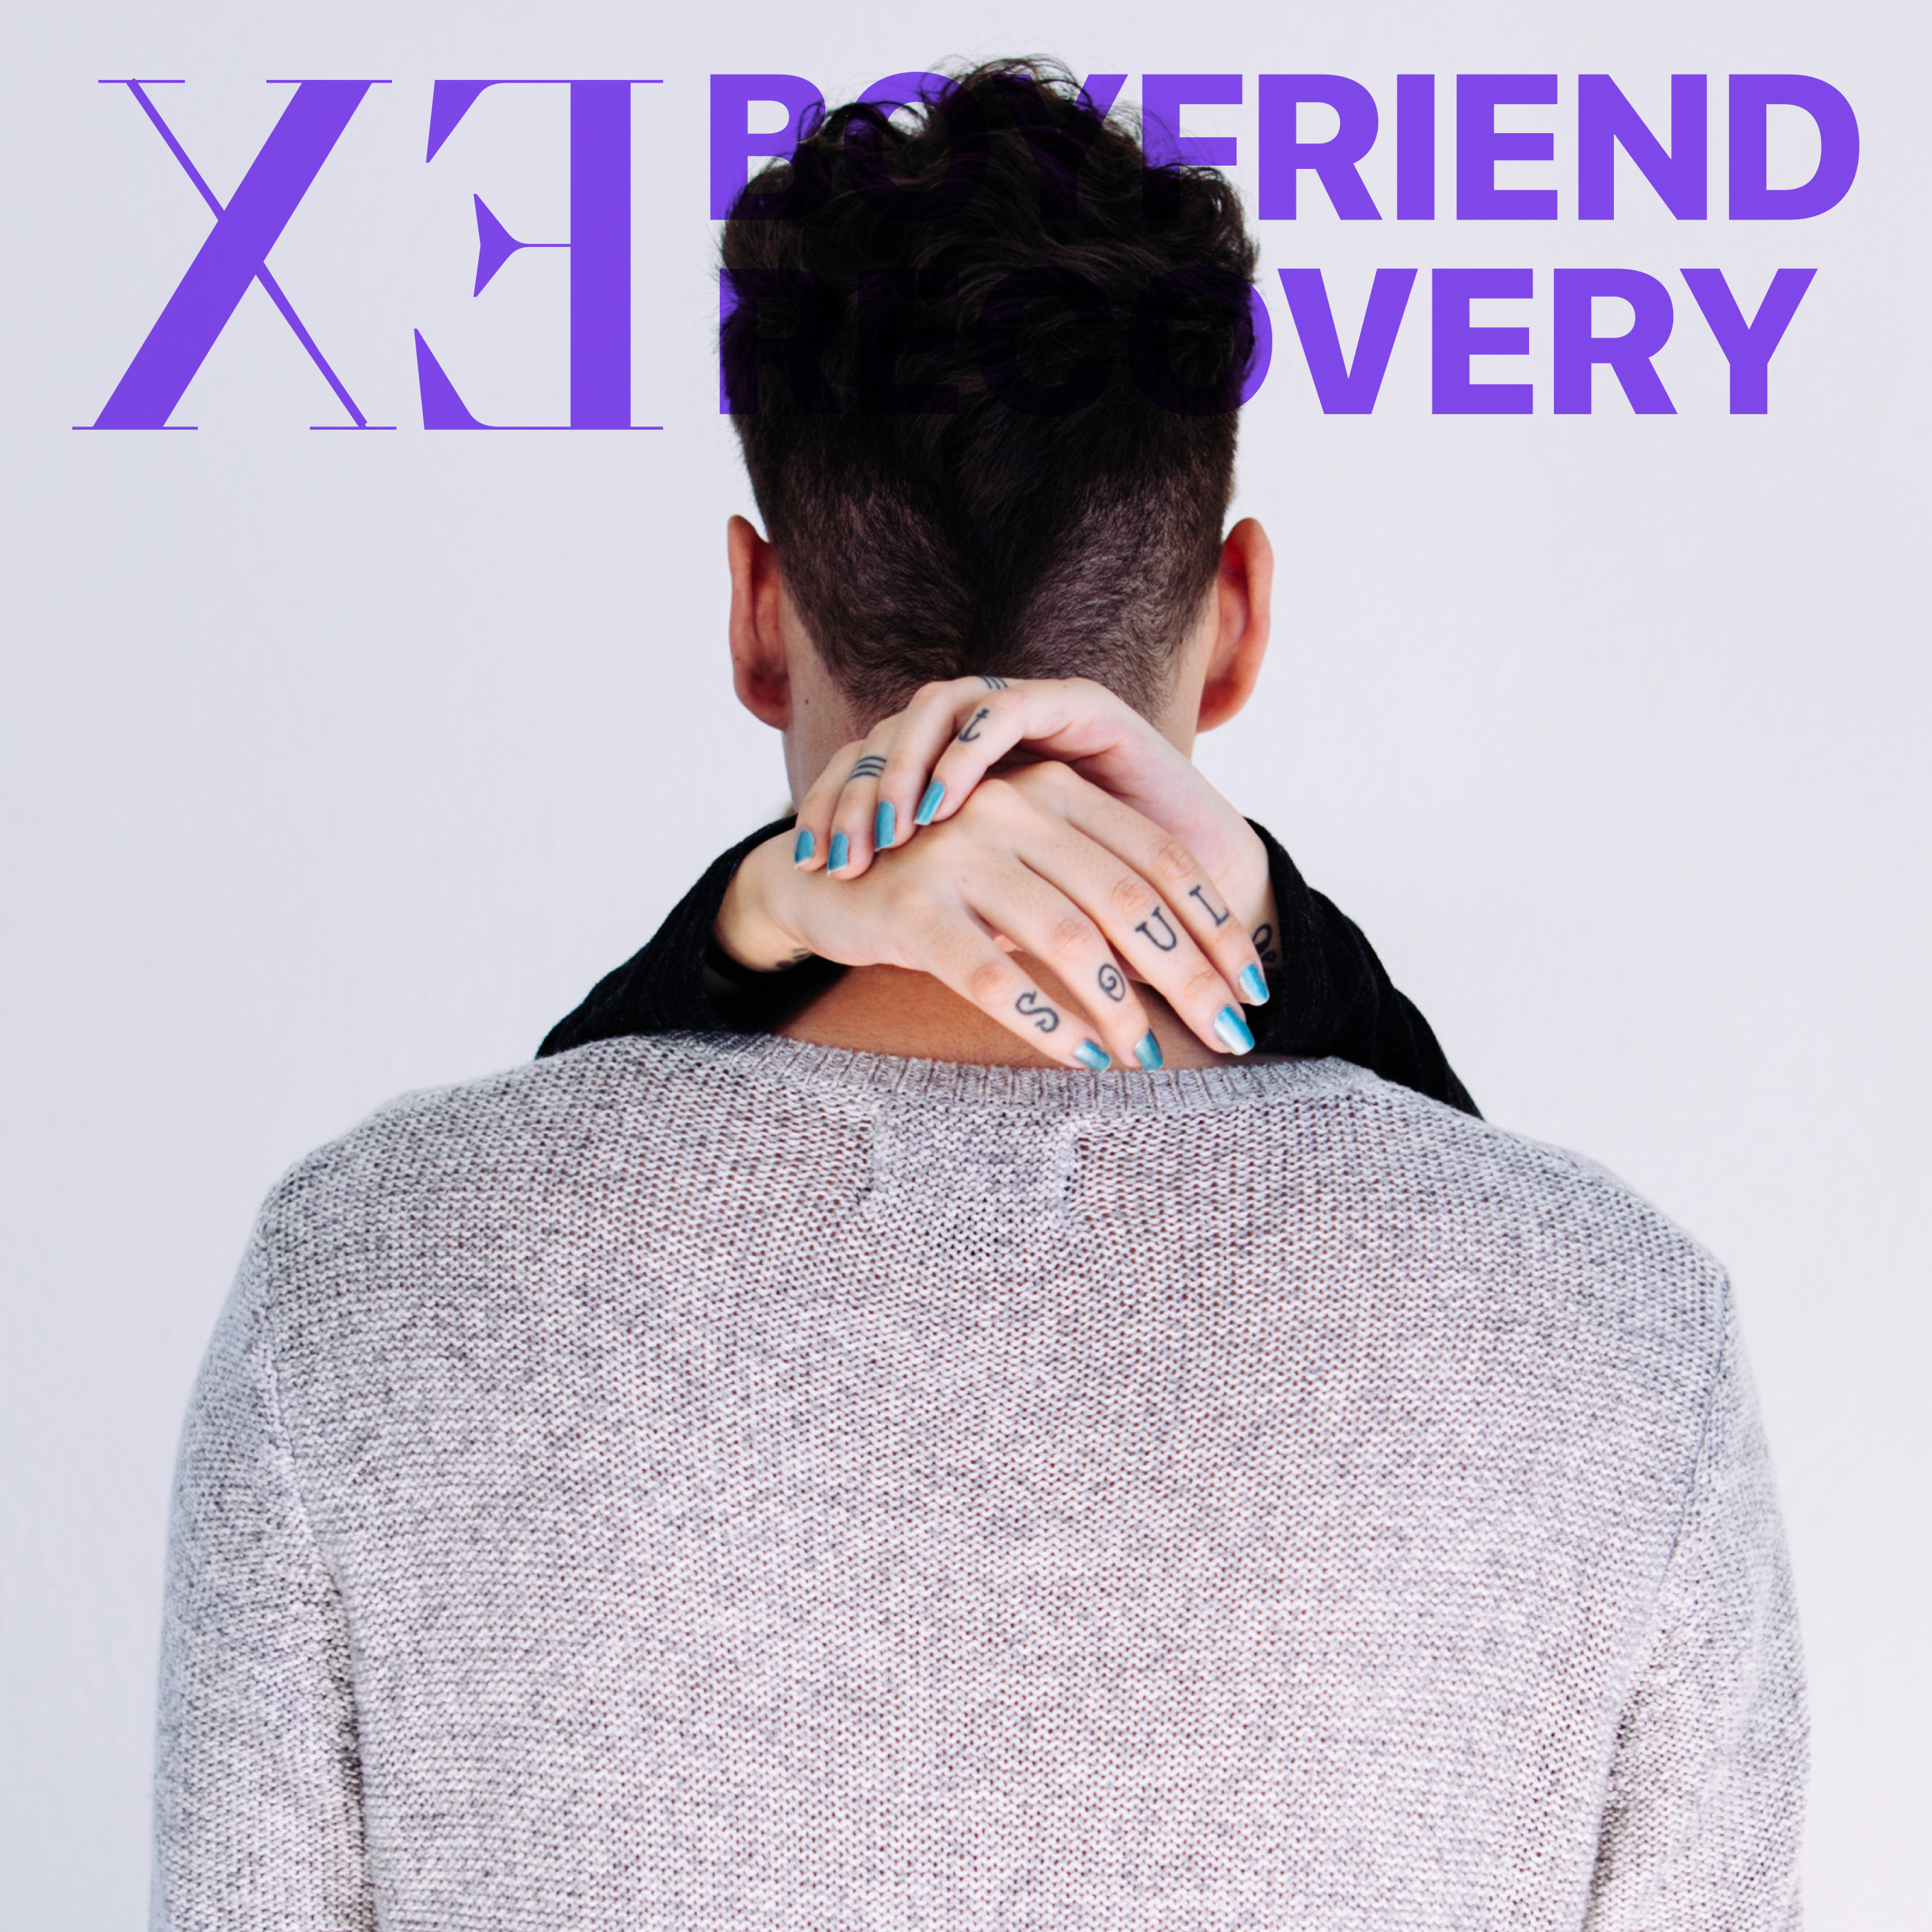 The Ex Boyfriend Recovery Podcast On Le Podcasts